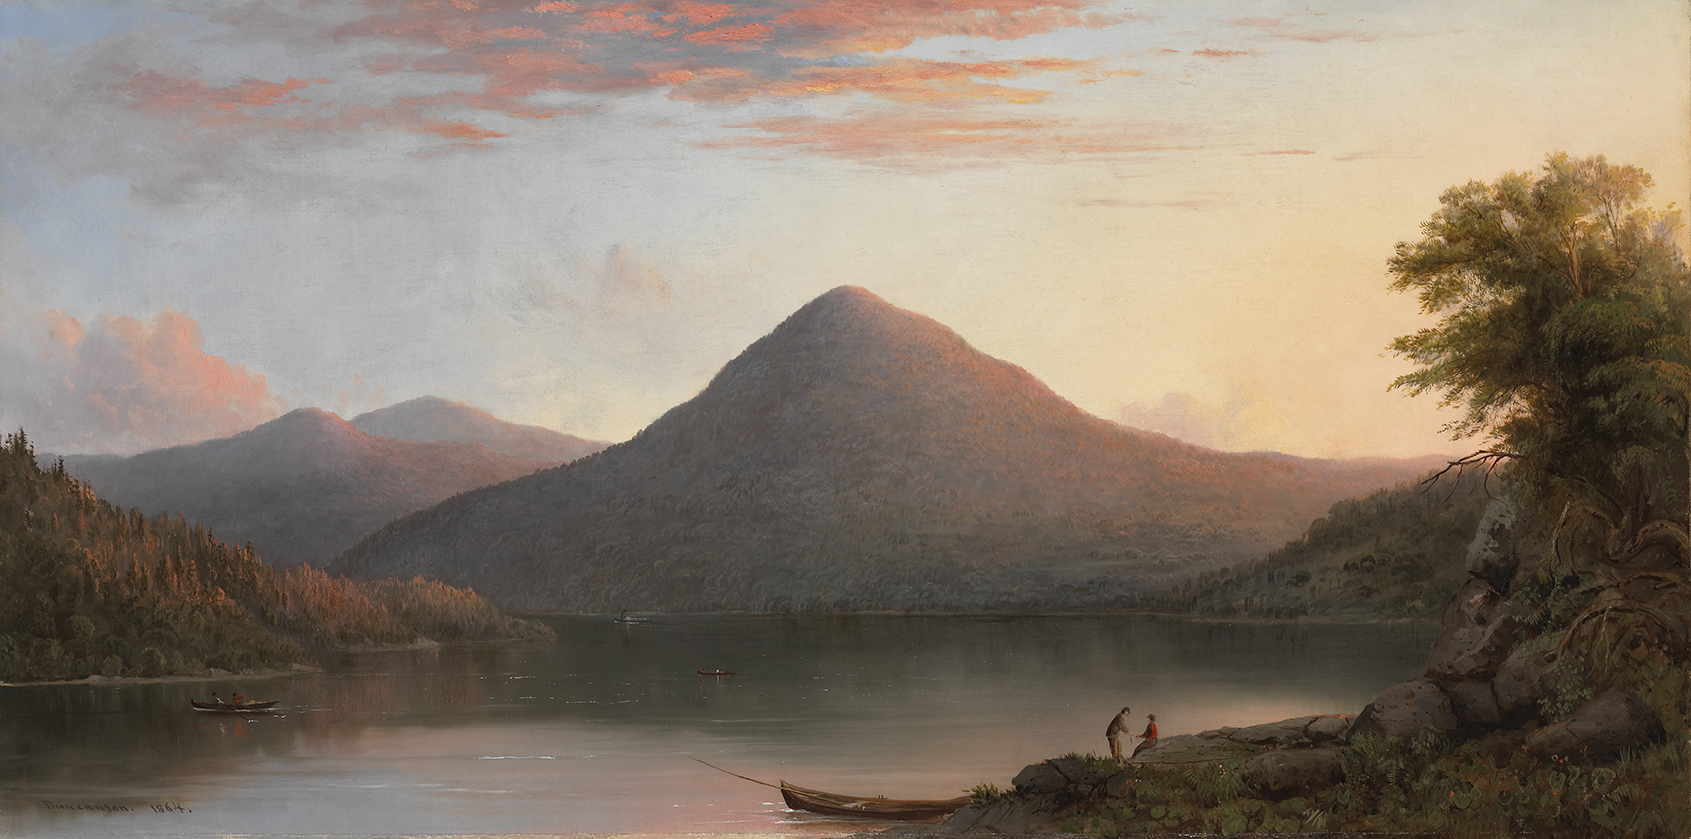 At the centre of the landscape is a mountain, its right slope illuminated by a golden light. The sky bathed in morning radiance is reflected in the lake in the foreground. A canoe is drawn up to the right bank, near two figures.